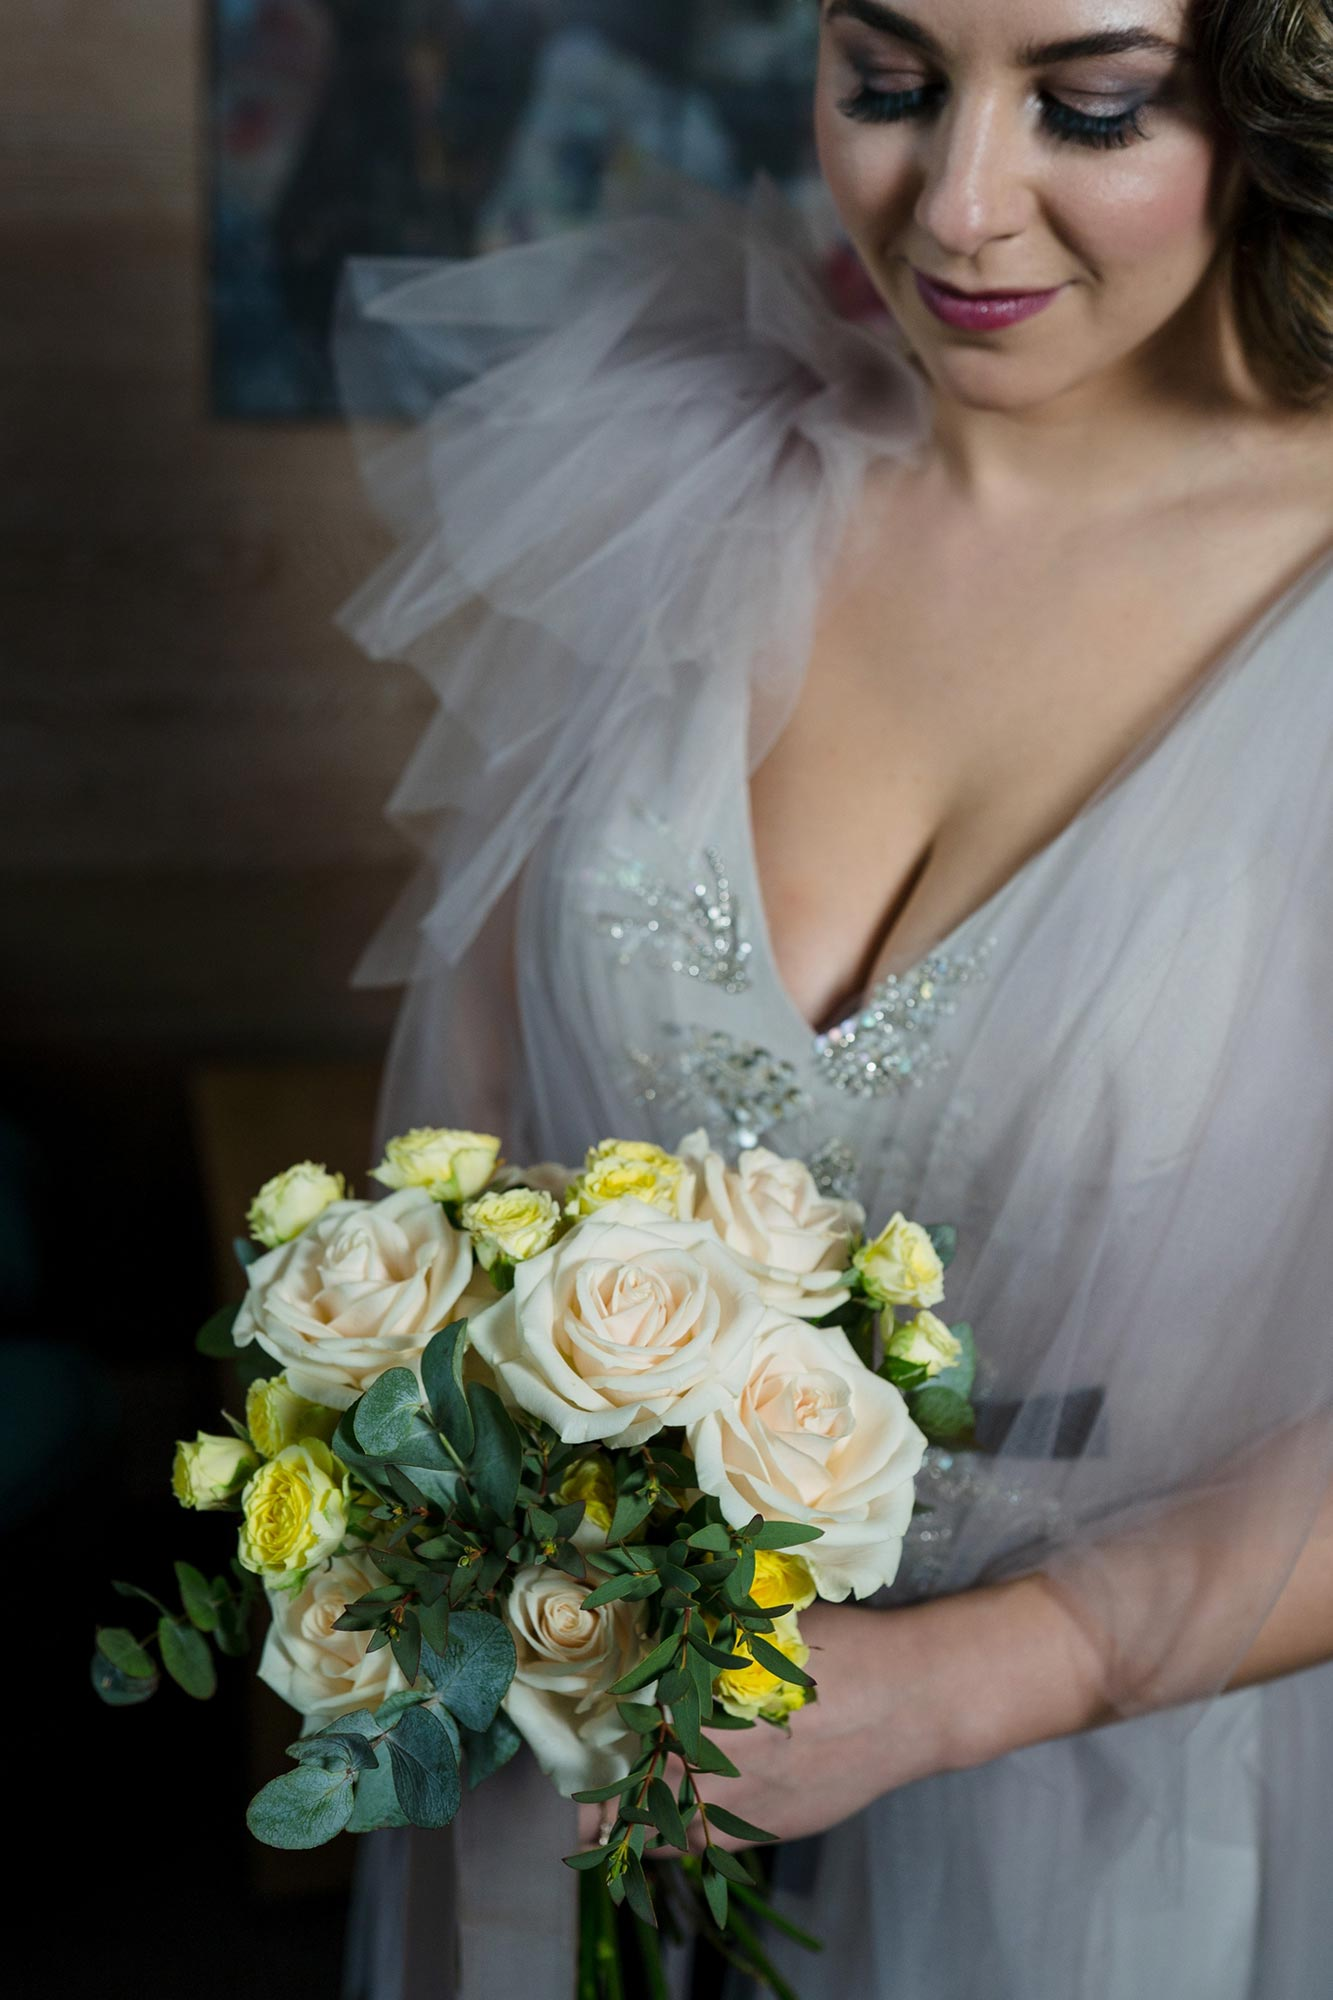 Bright Neon Wedding Inspiration at The Bowery Hotel NYC showing gray wedding dress and flowers JC Lemon Photography